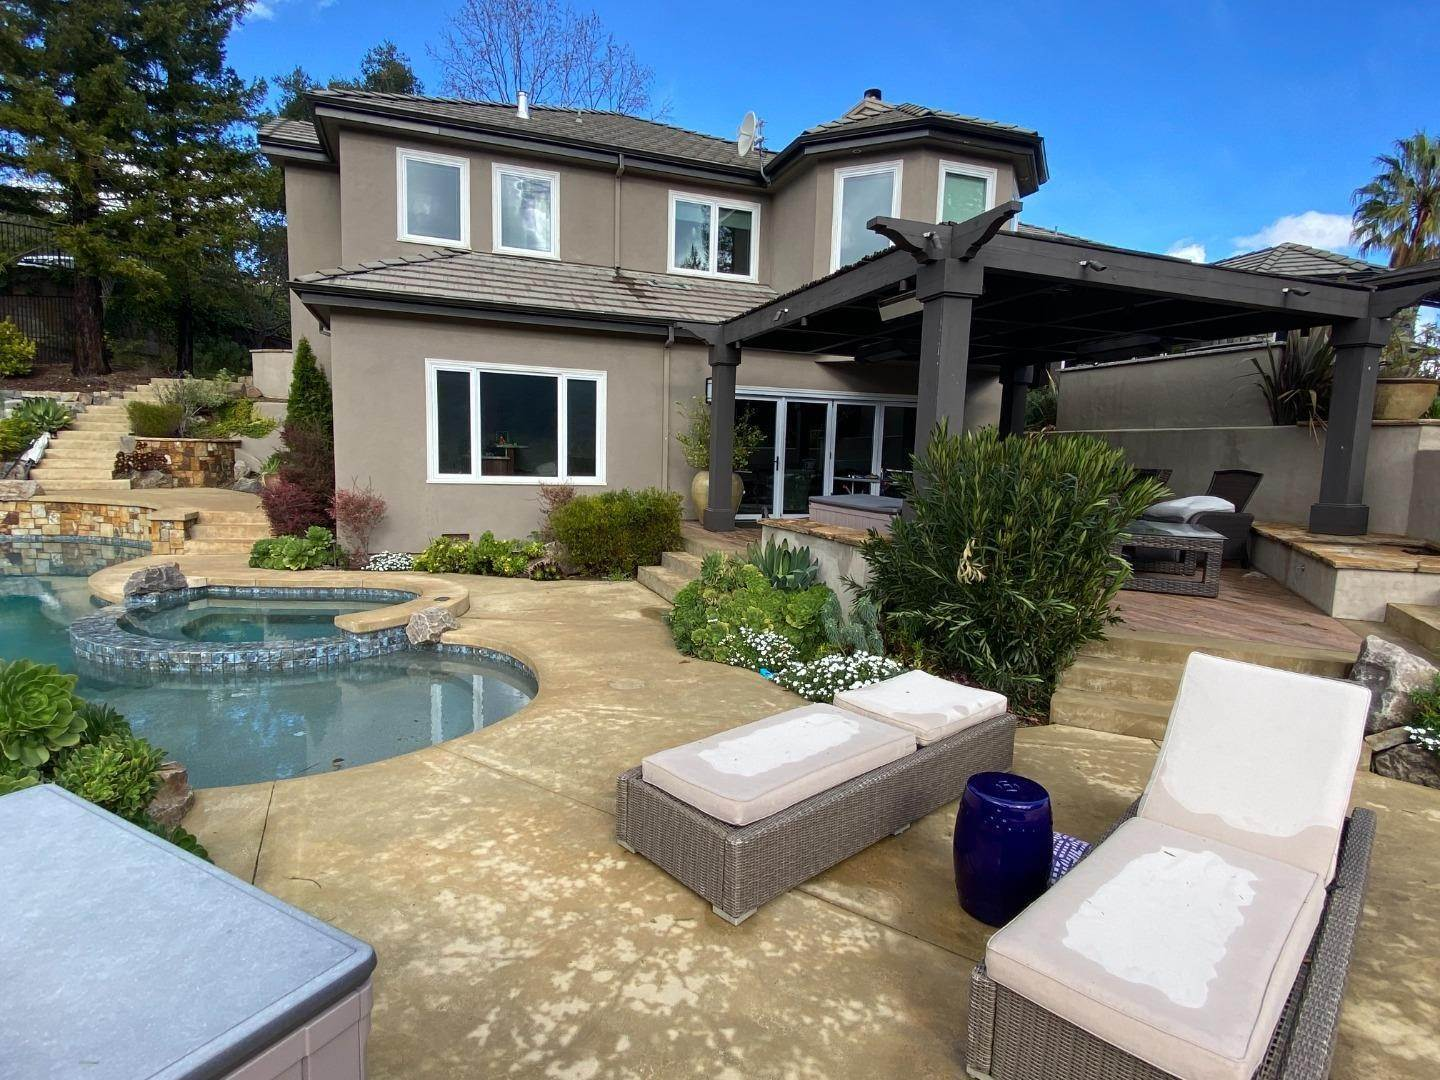 Single Family Homes for Sale at 125 Sierra Azule Los Gatos, California 95032 United States